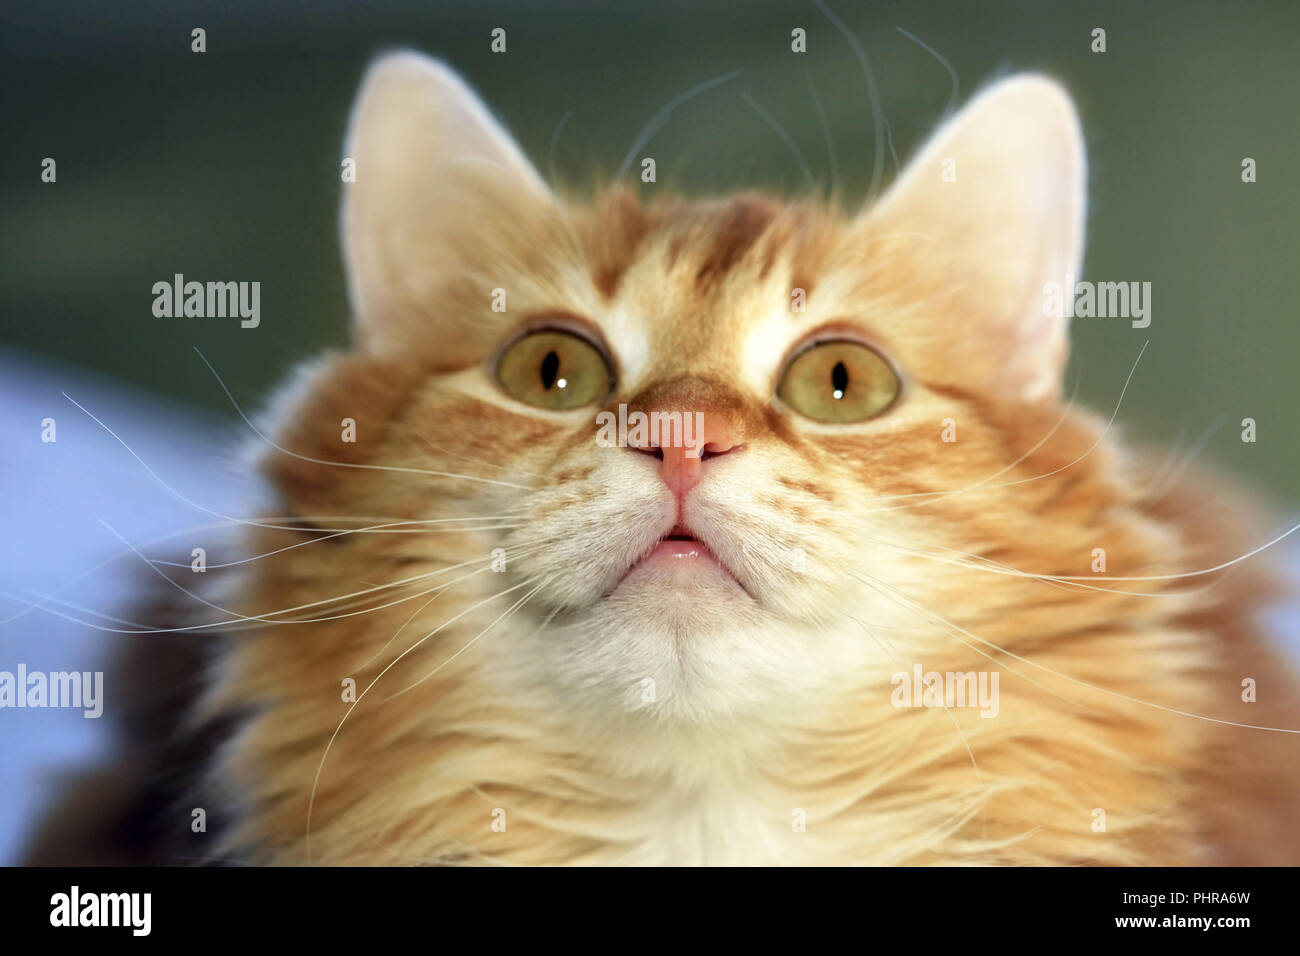 Portrait of a young cat - Stock Image